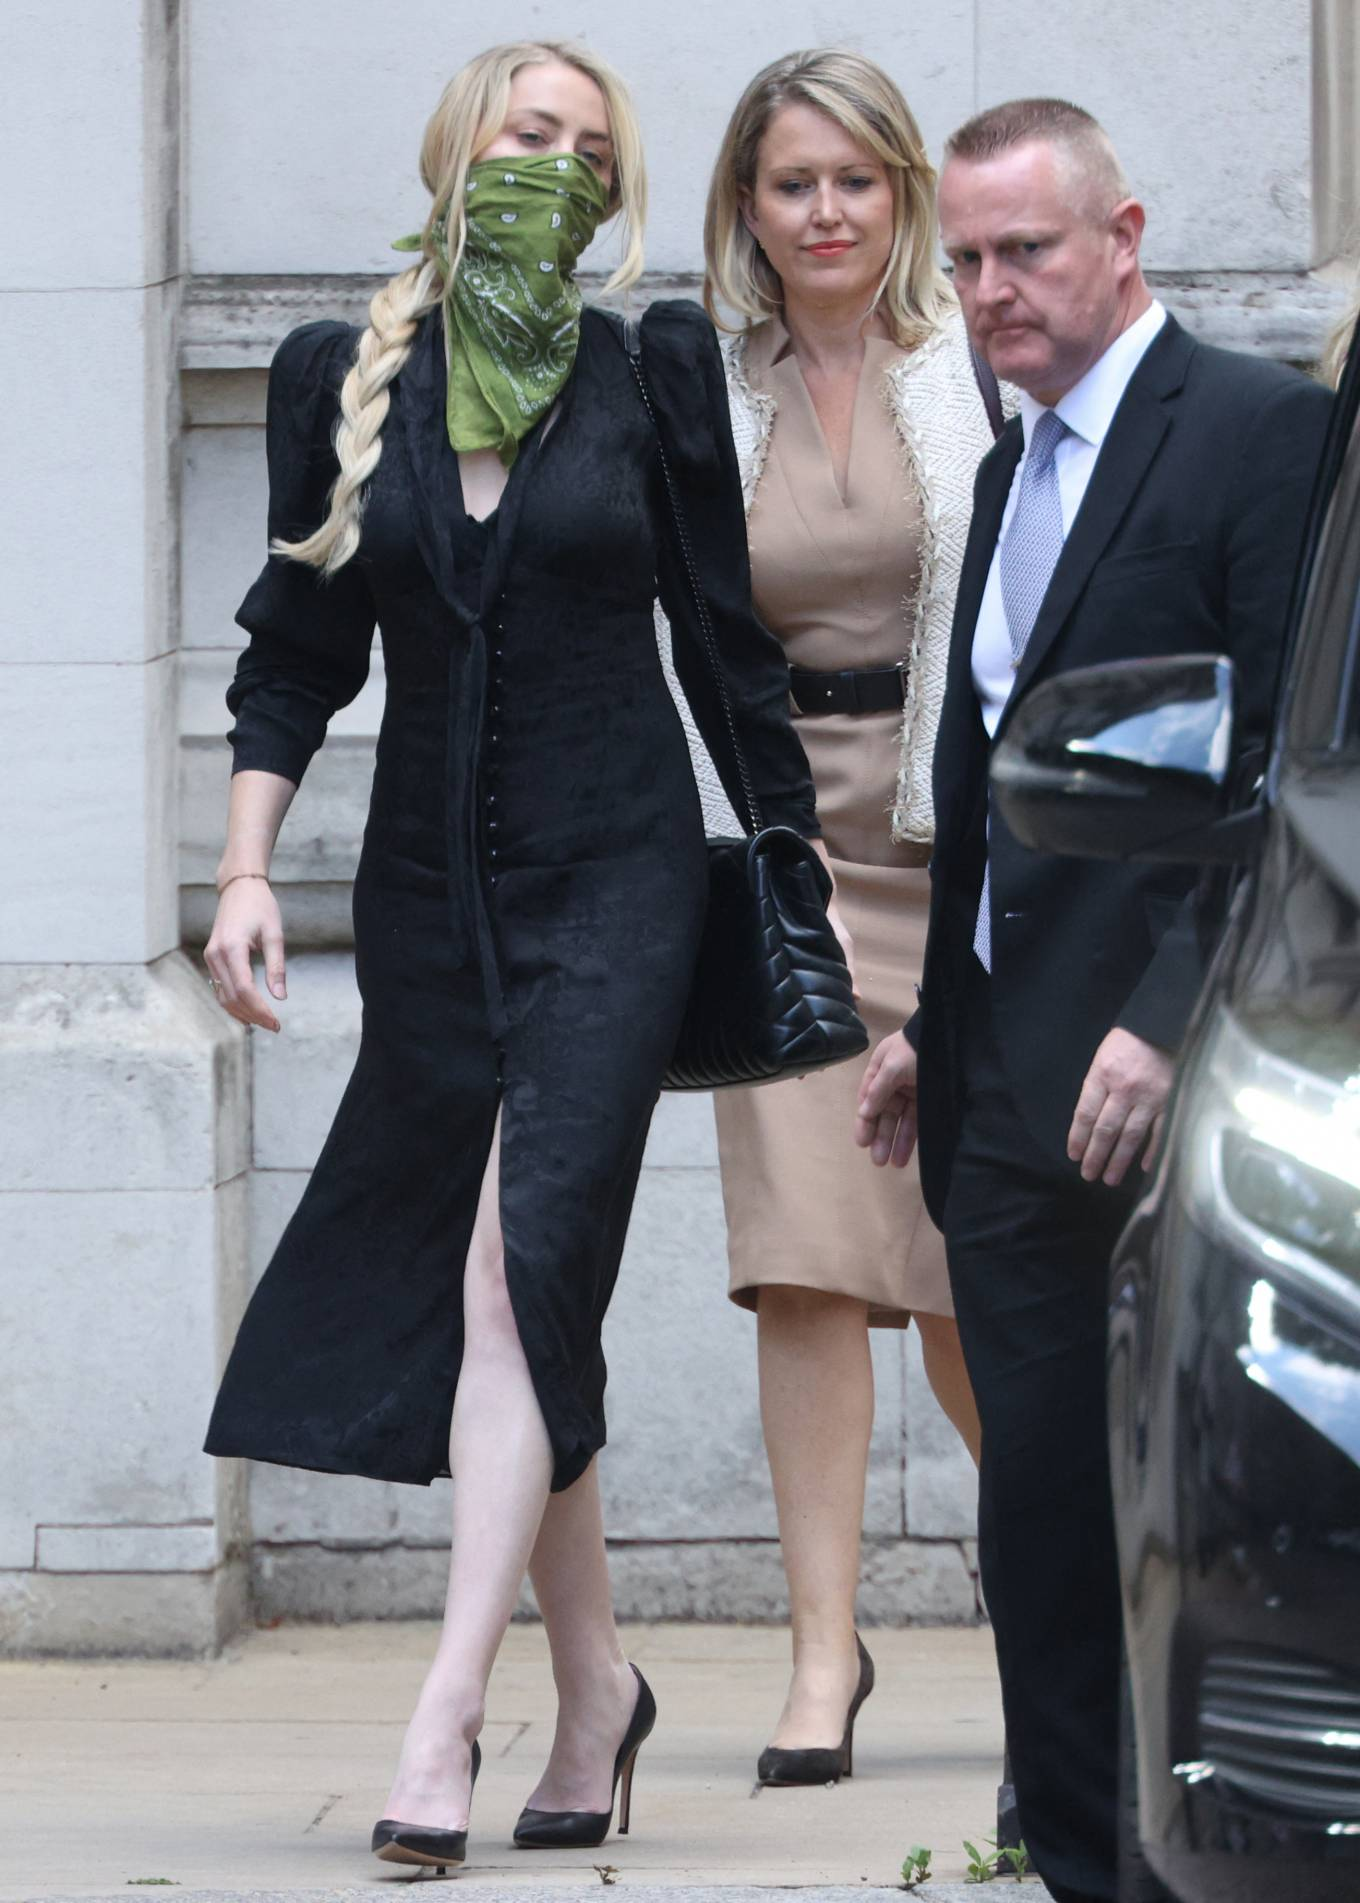 Amber Heard - Pictured leaving the High Court in London